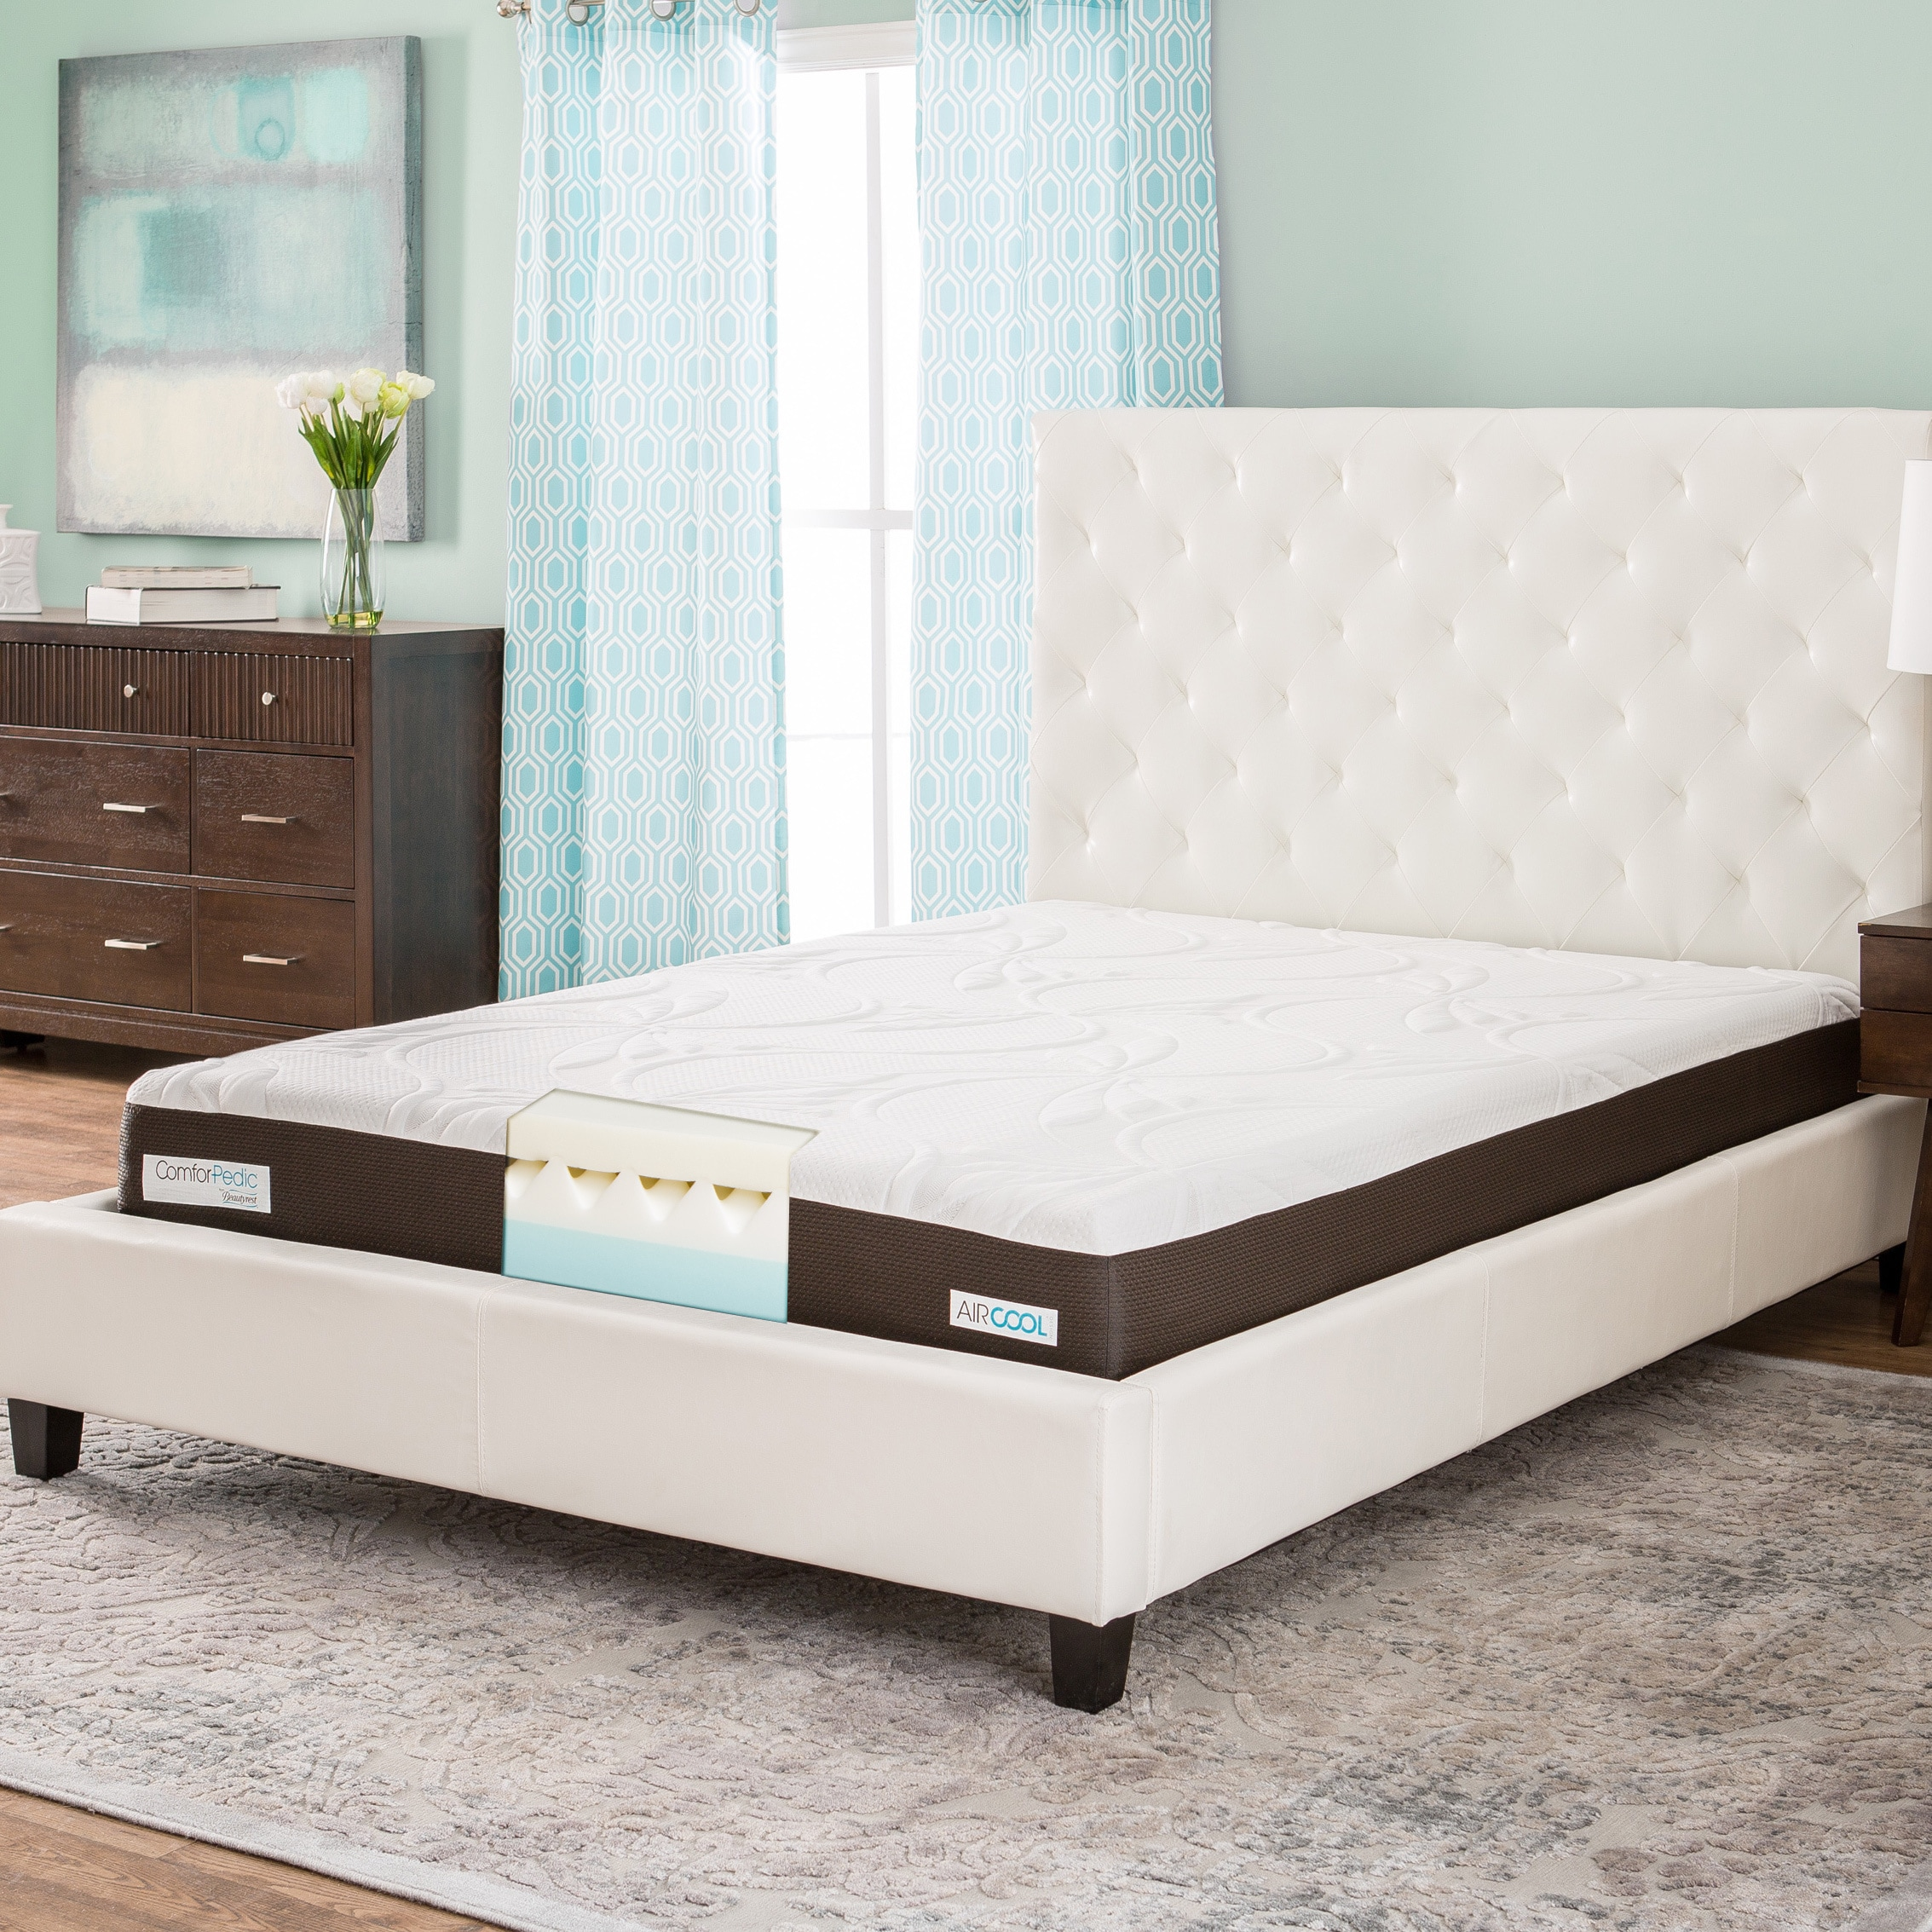 Simmons Beautyrest ComforPedic from Beautyrest 8-inch Que...